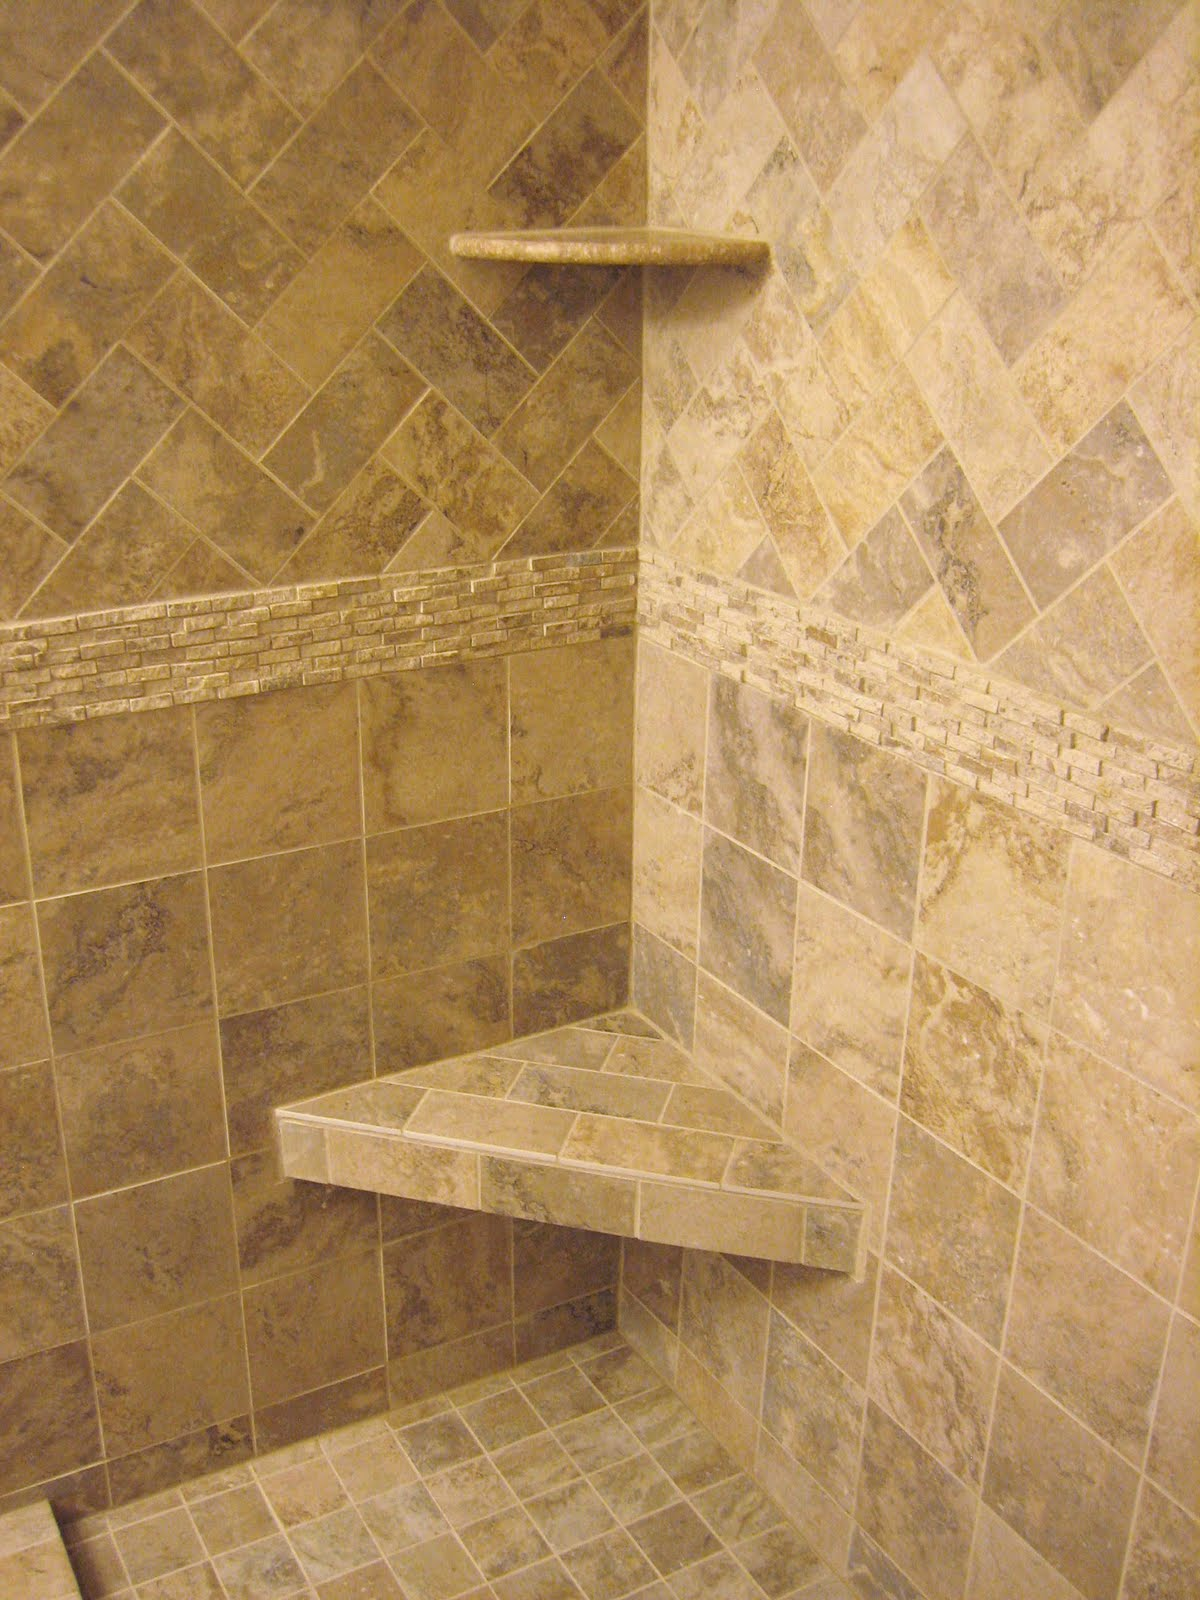 H winter showroom blog june 2010 for Old tile bathroom ideas